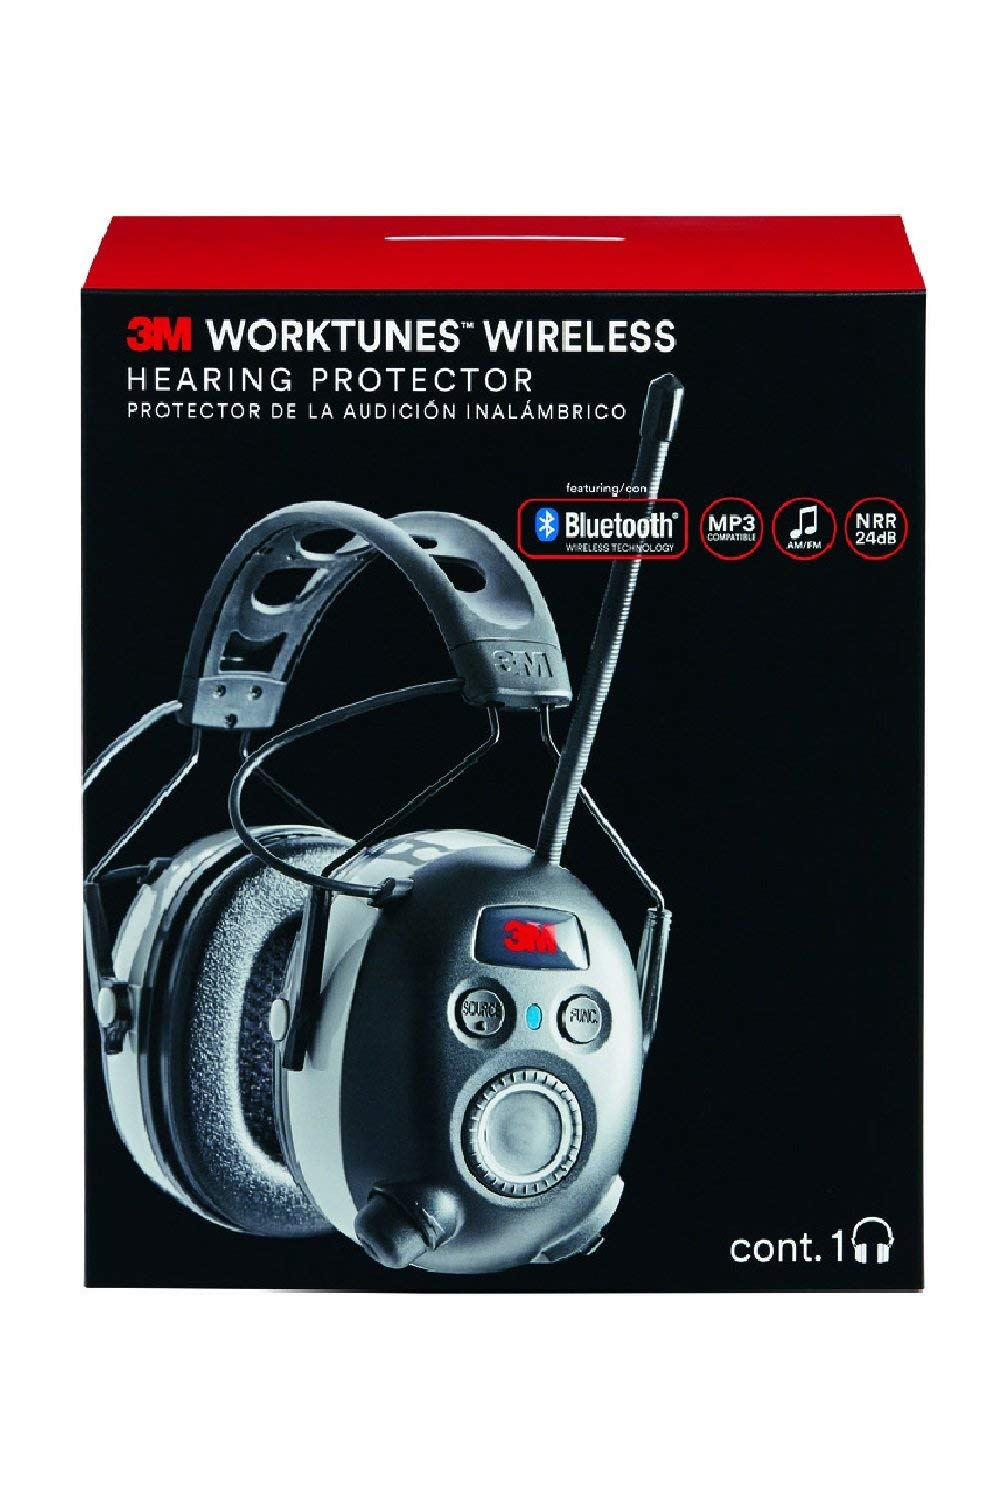 3M Worktunes Wireless Hearing Protection with Bluetooth Technology and AM/FM Radio (Renewed) by 3M Safety